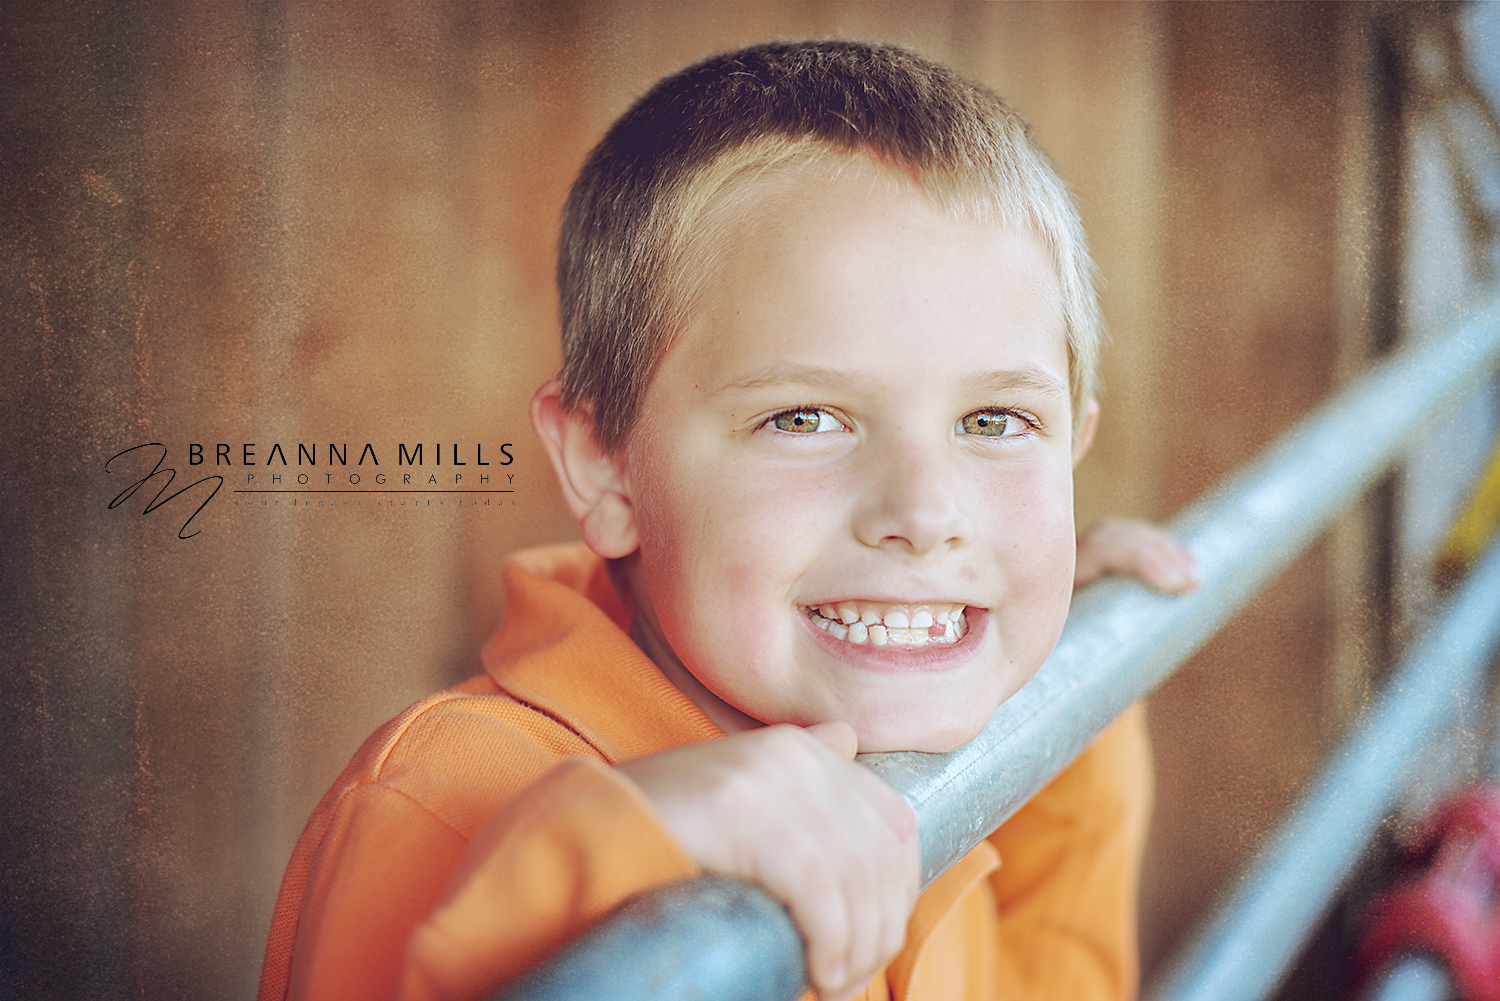 johnson-city-child-and-family-photographer-breanna-mills-photography-simerly (5).jpg